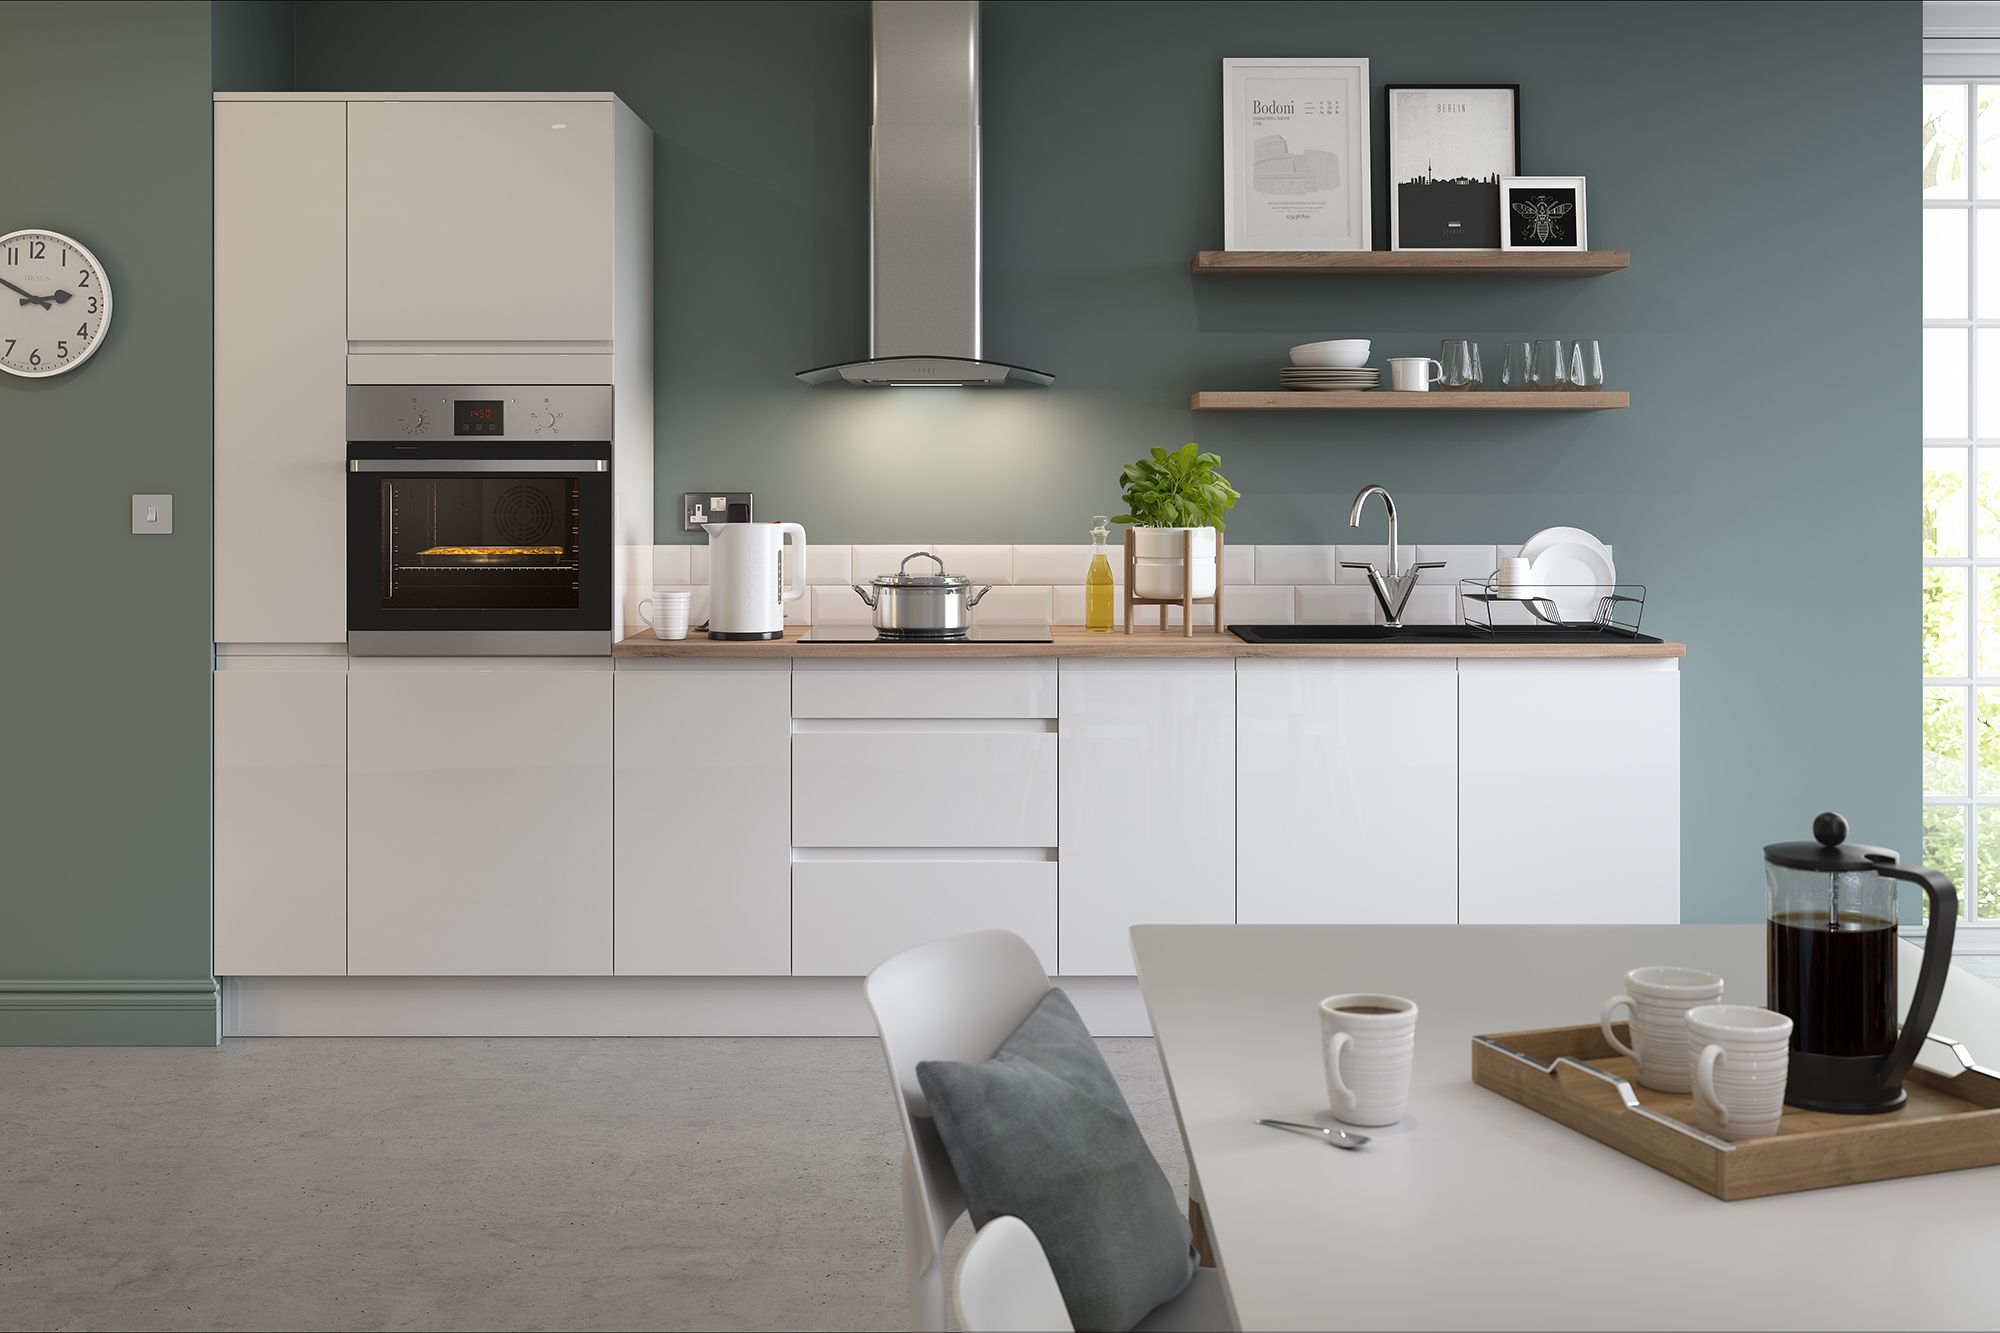 Cottage style kitchens with lacquer fronts radiate a natural